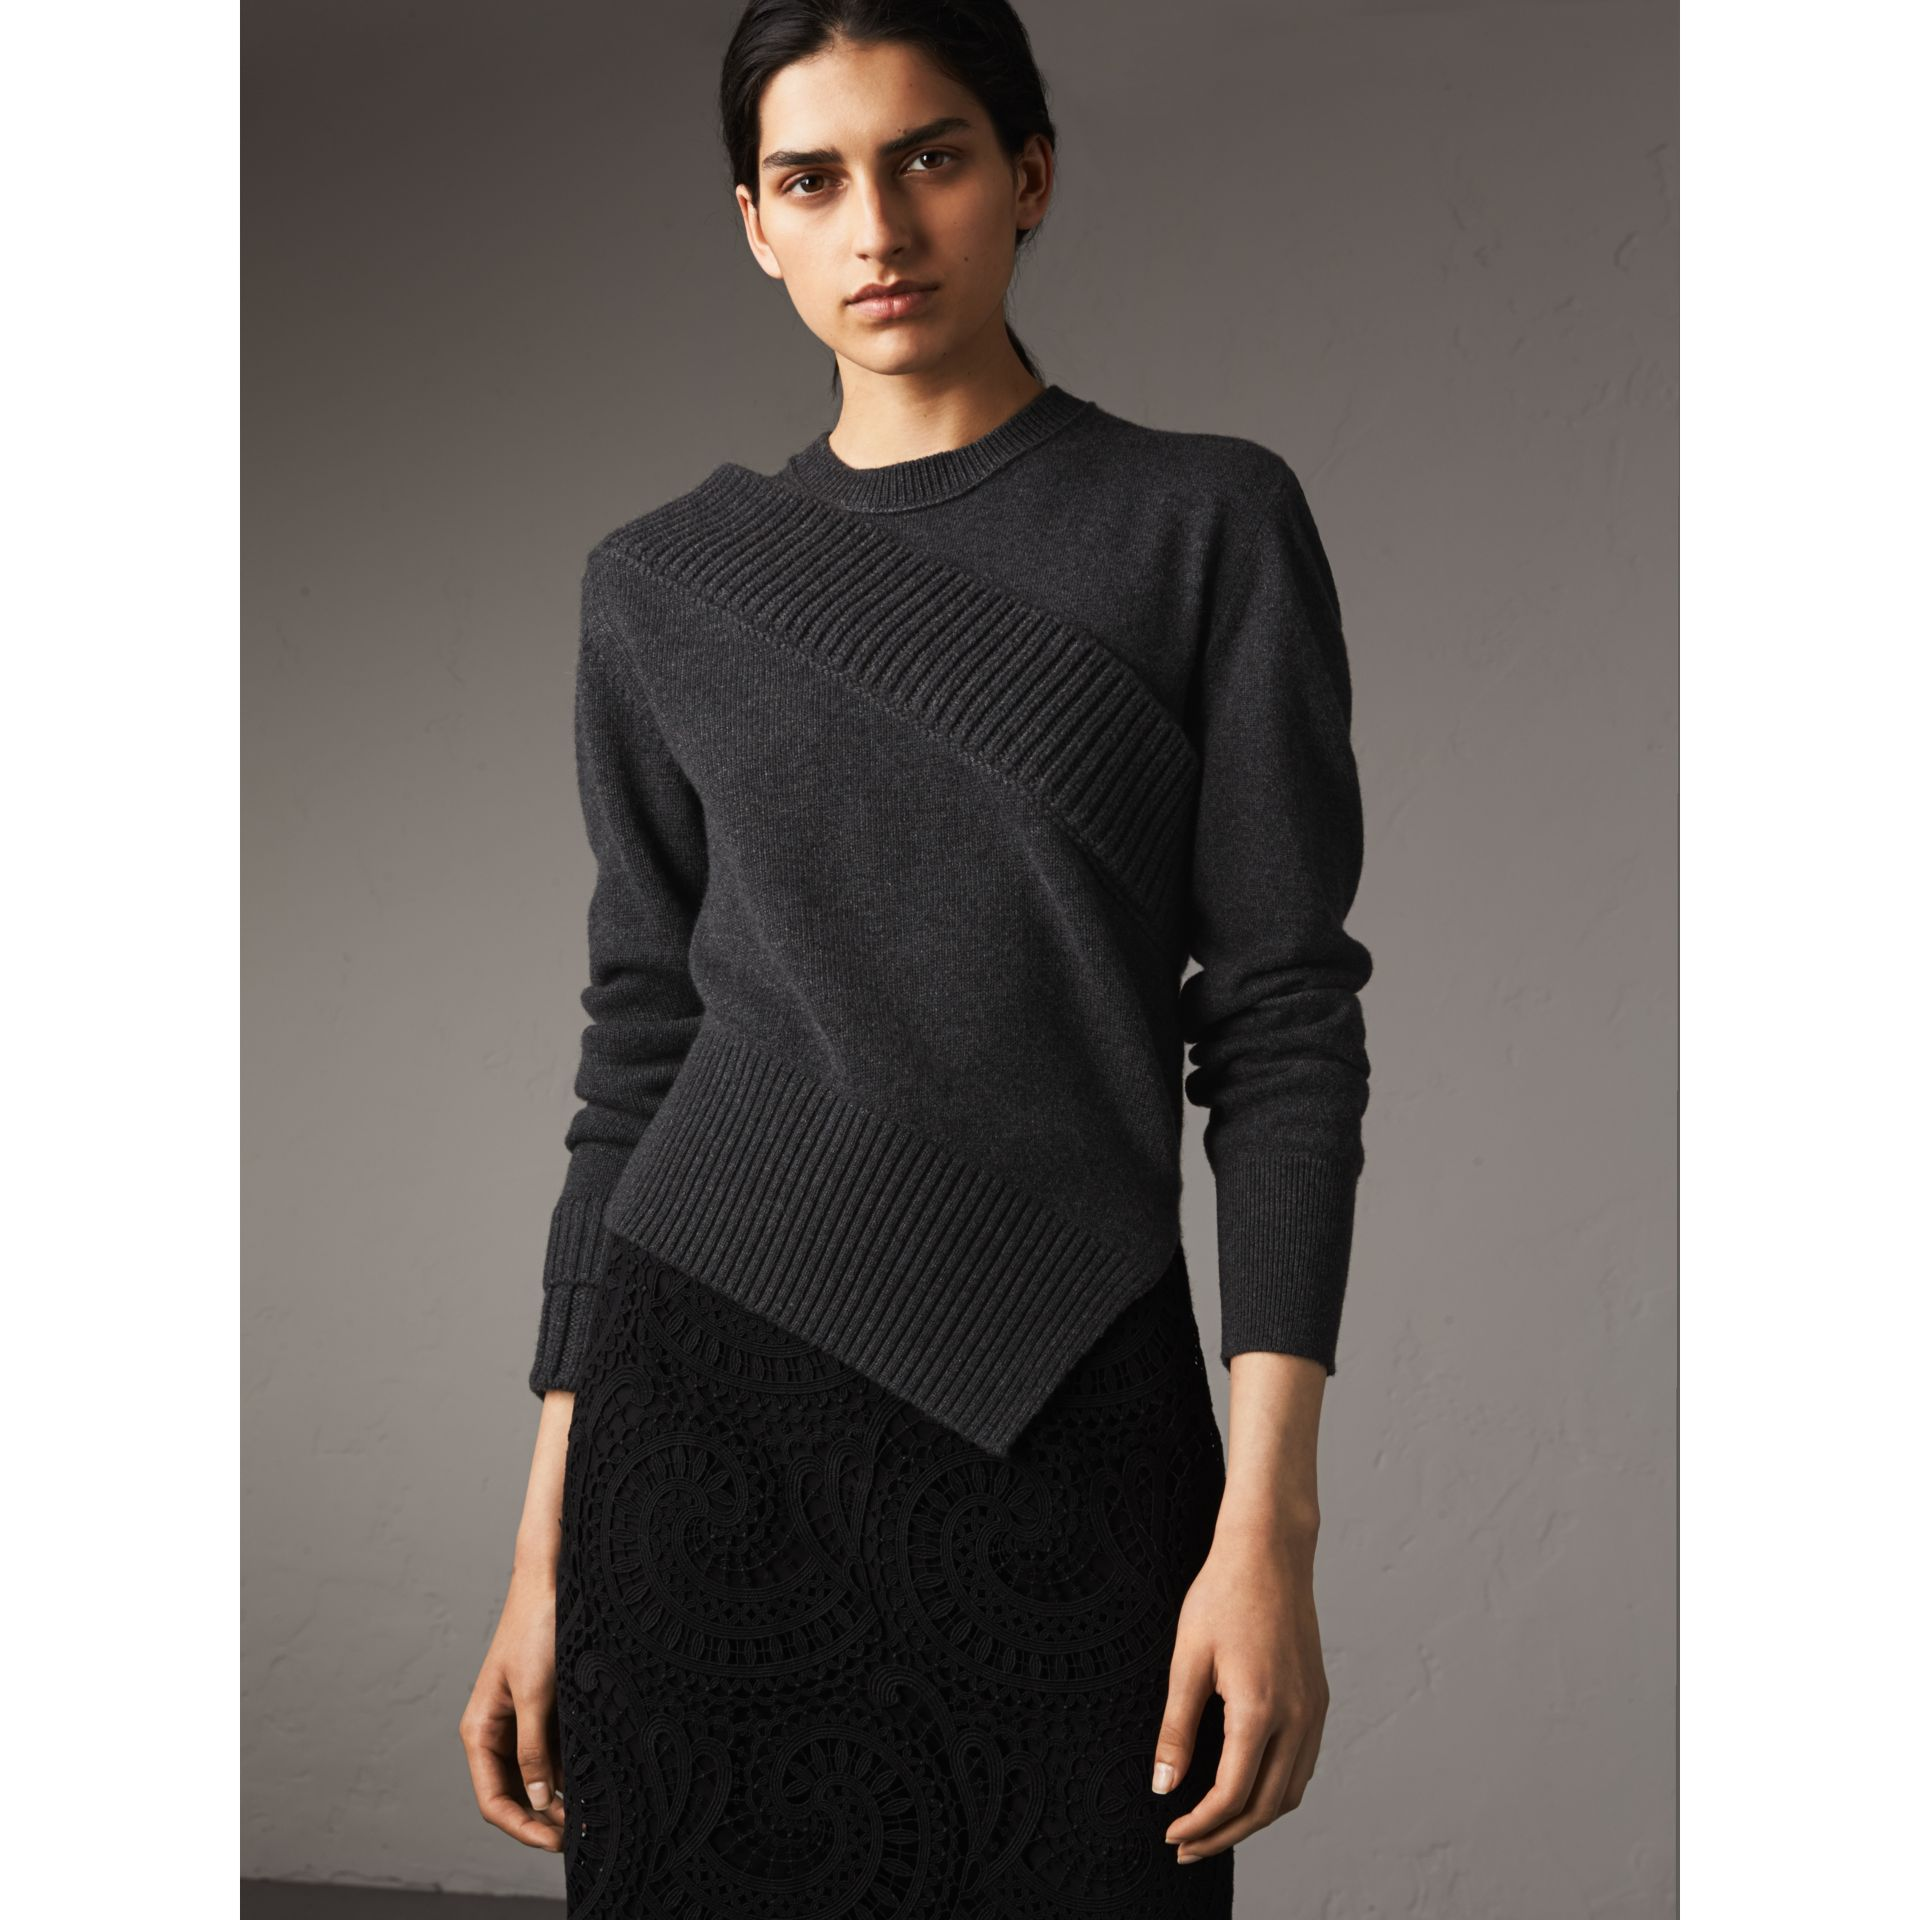 Rib Knit Detail Cashmere Asymmetric Sweater in Charcoal - Women | Burberry Australia - gallery image 5